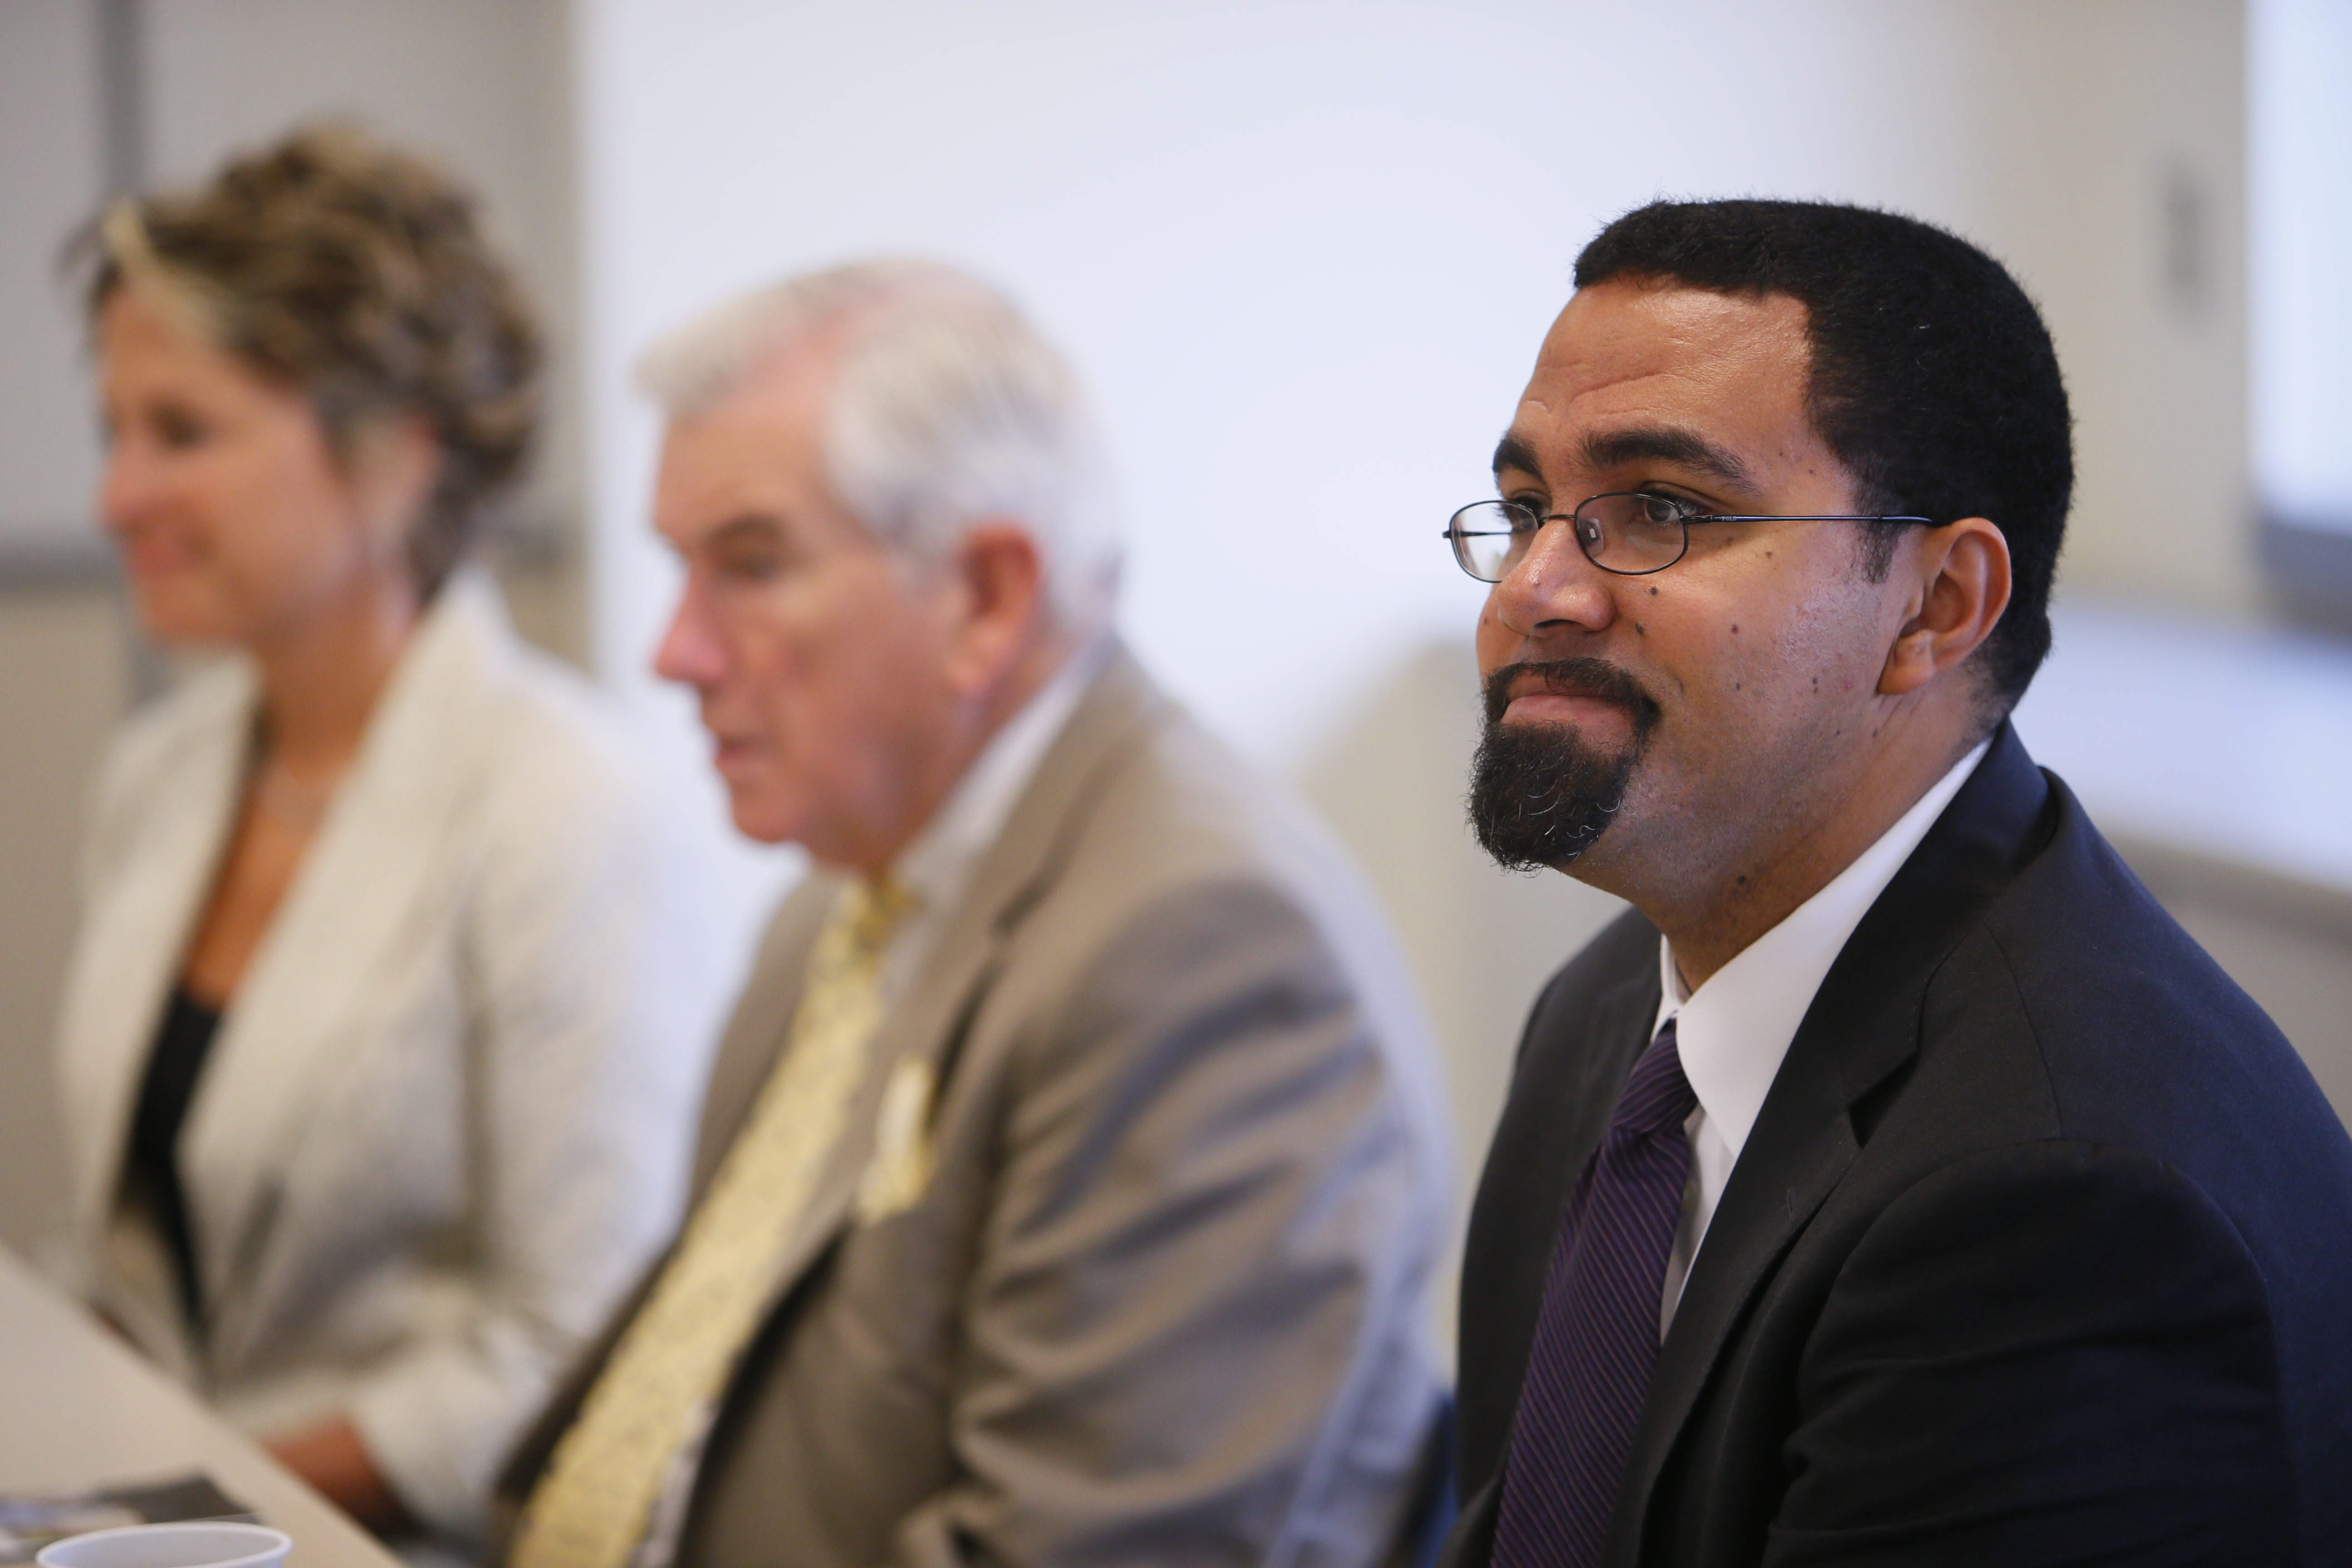 Education Commissioner John B. King Jr. says public should hold school district leaders accountable.